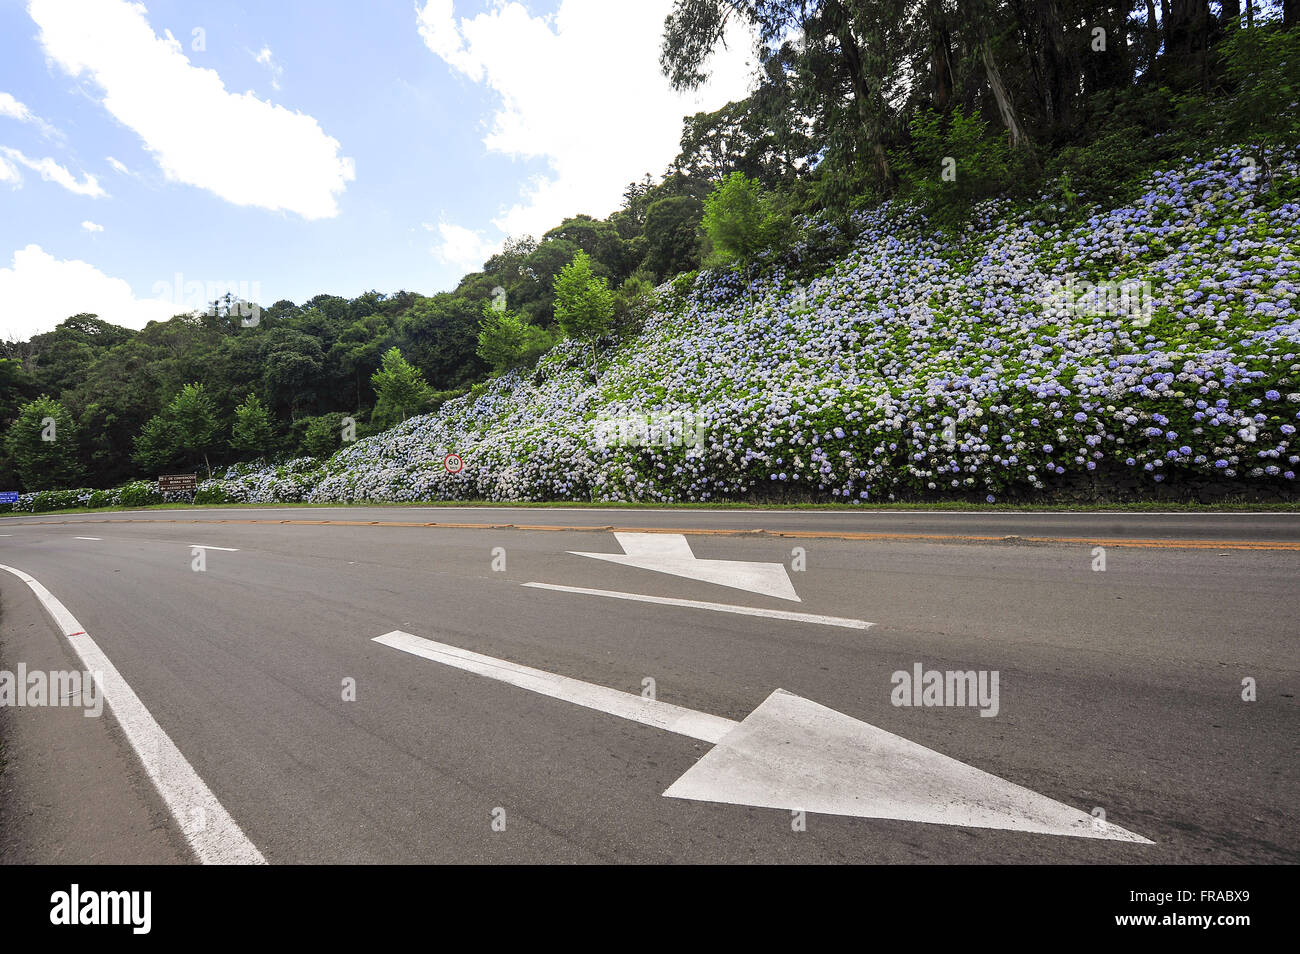 Hydrangeas in RS-115 roadside in Minnesota - Stock Image